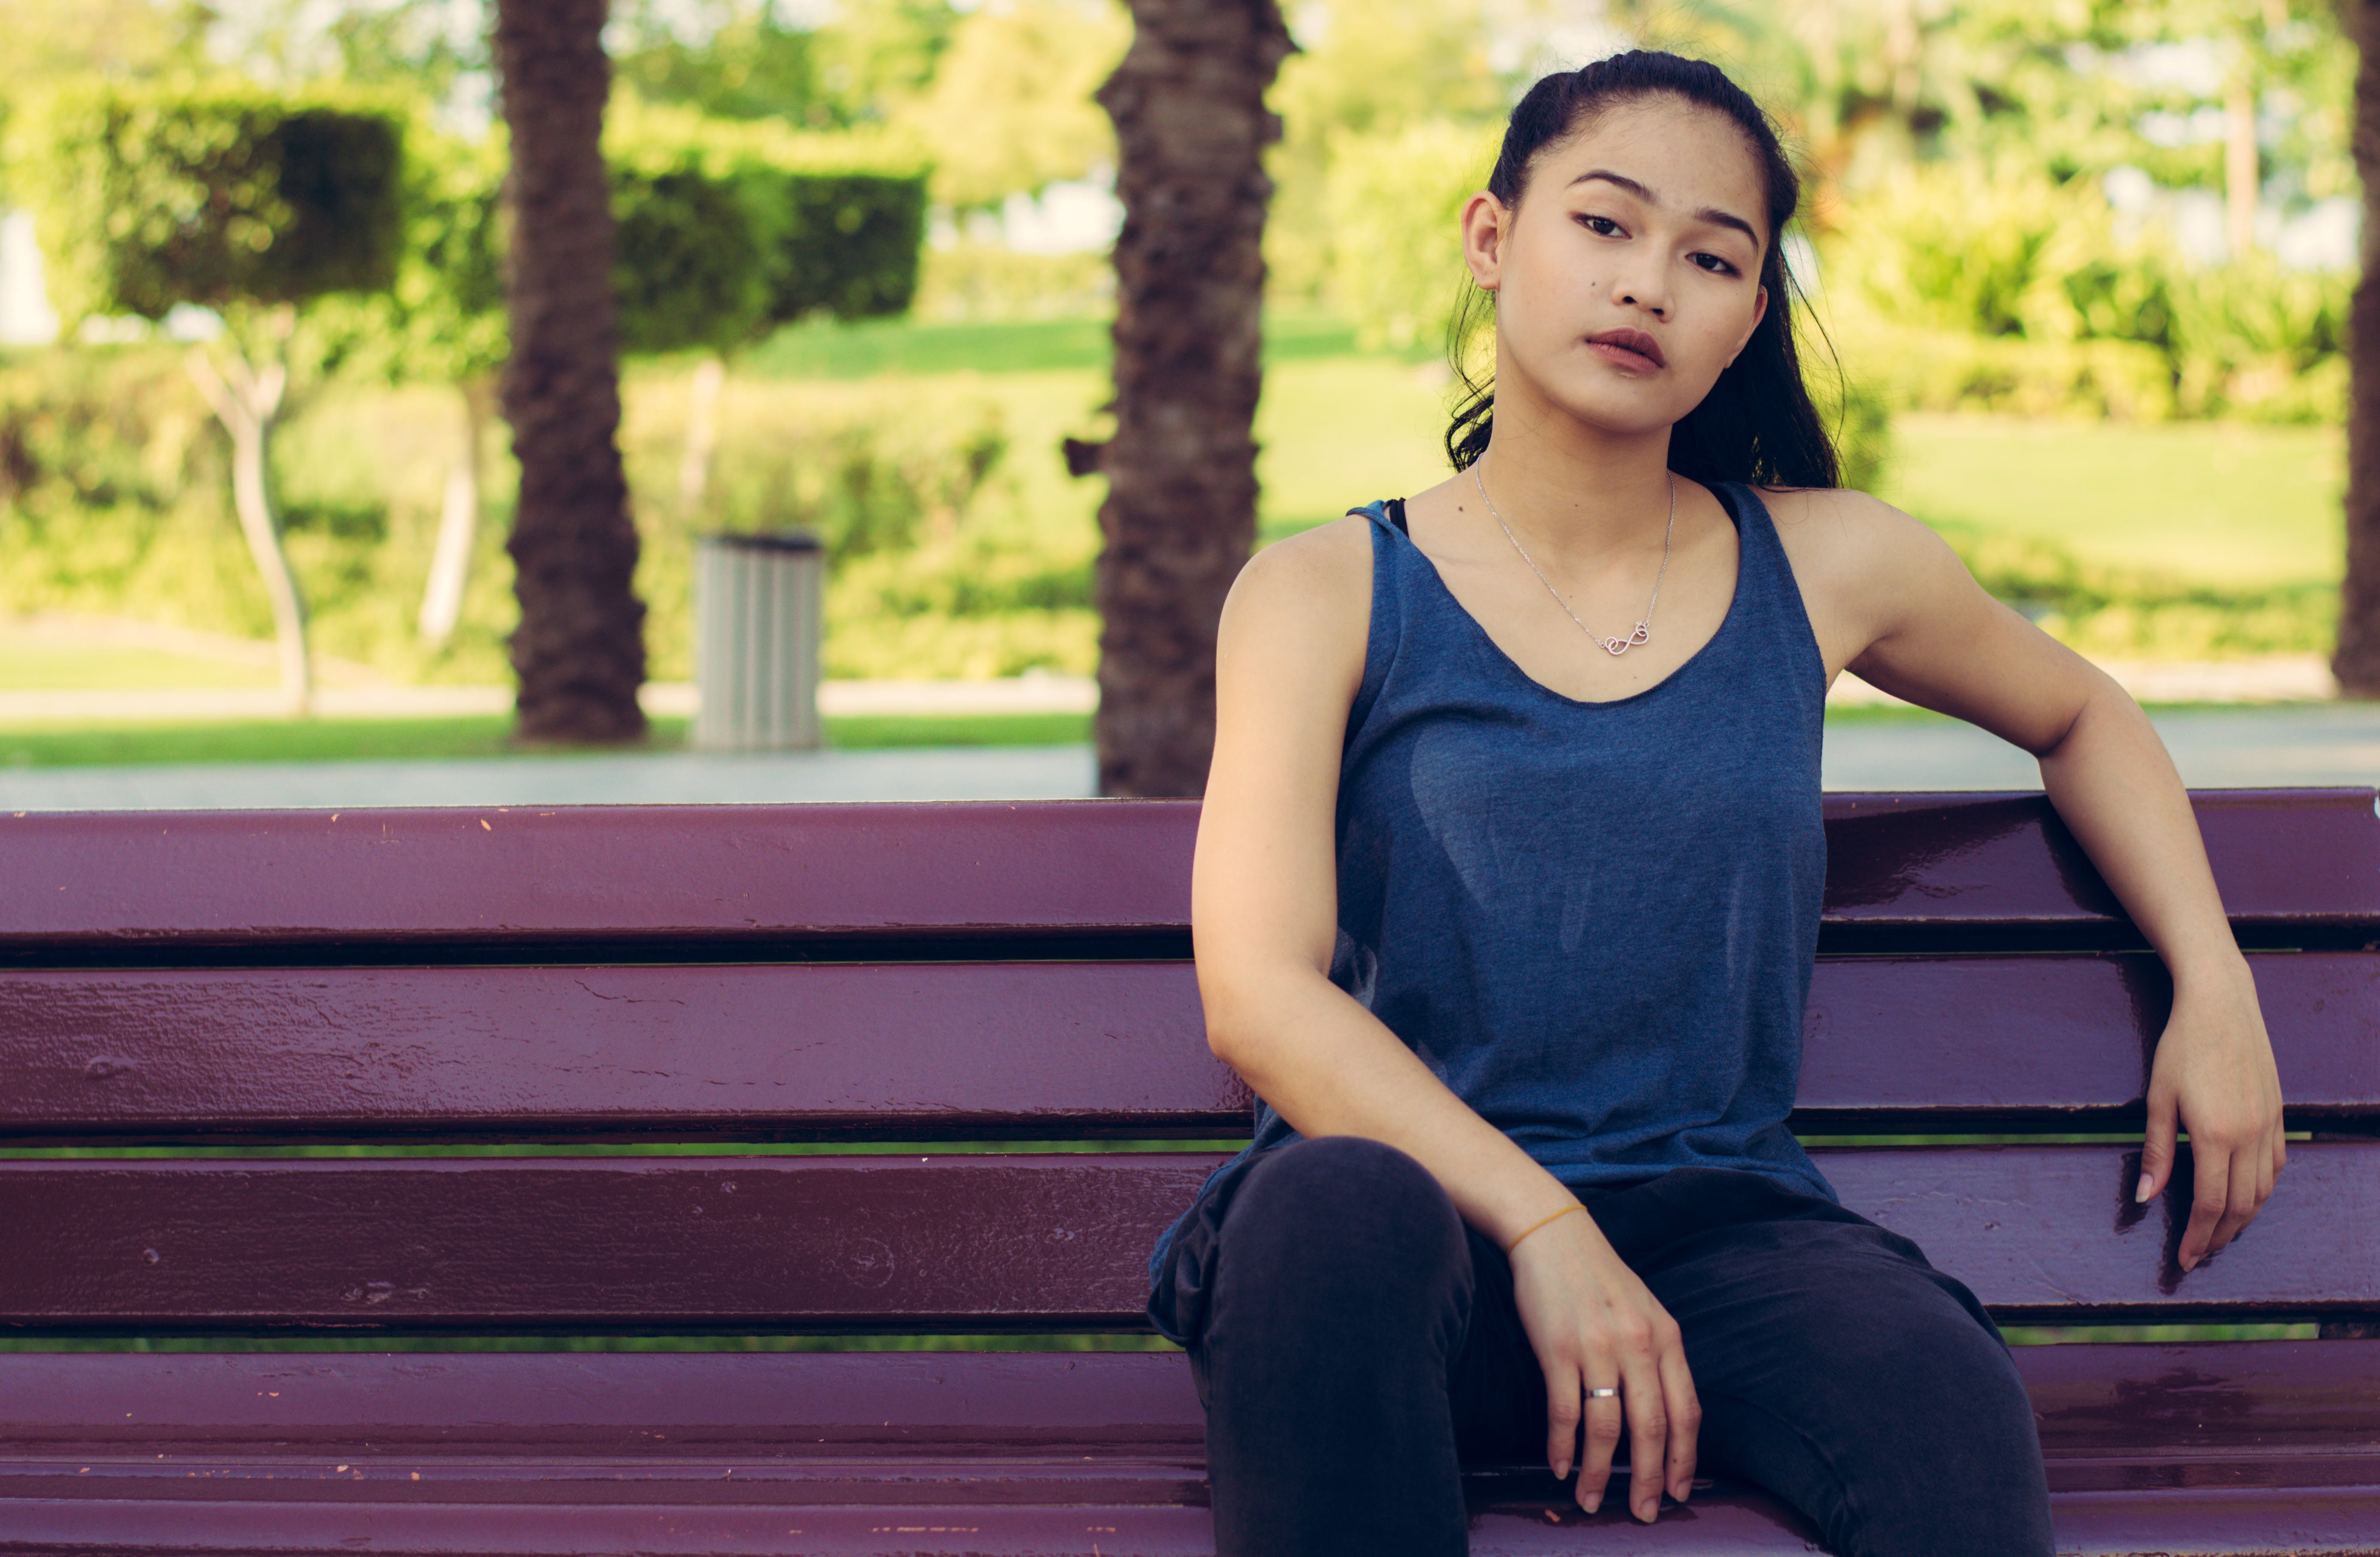 Woman Sitting on Brown Wooden Bench